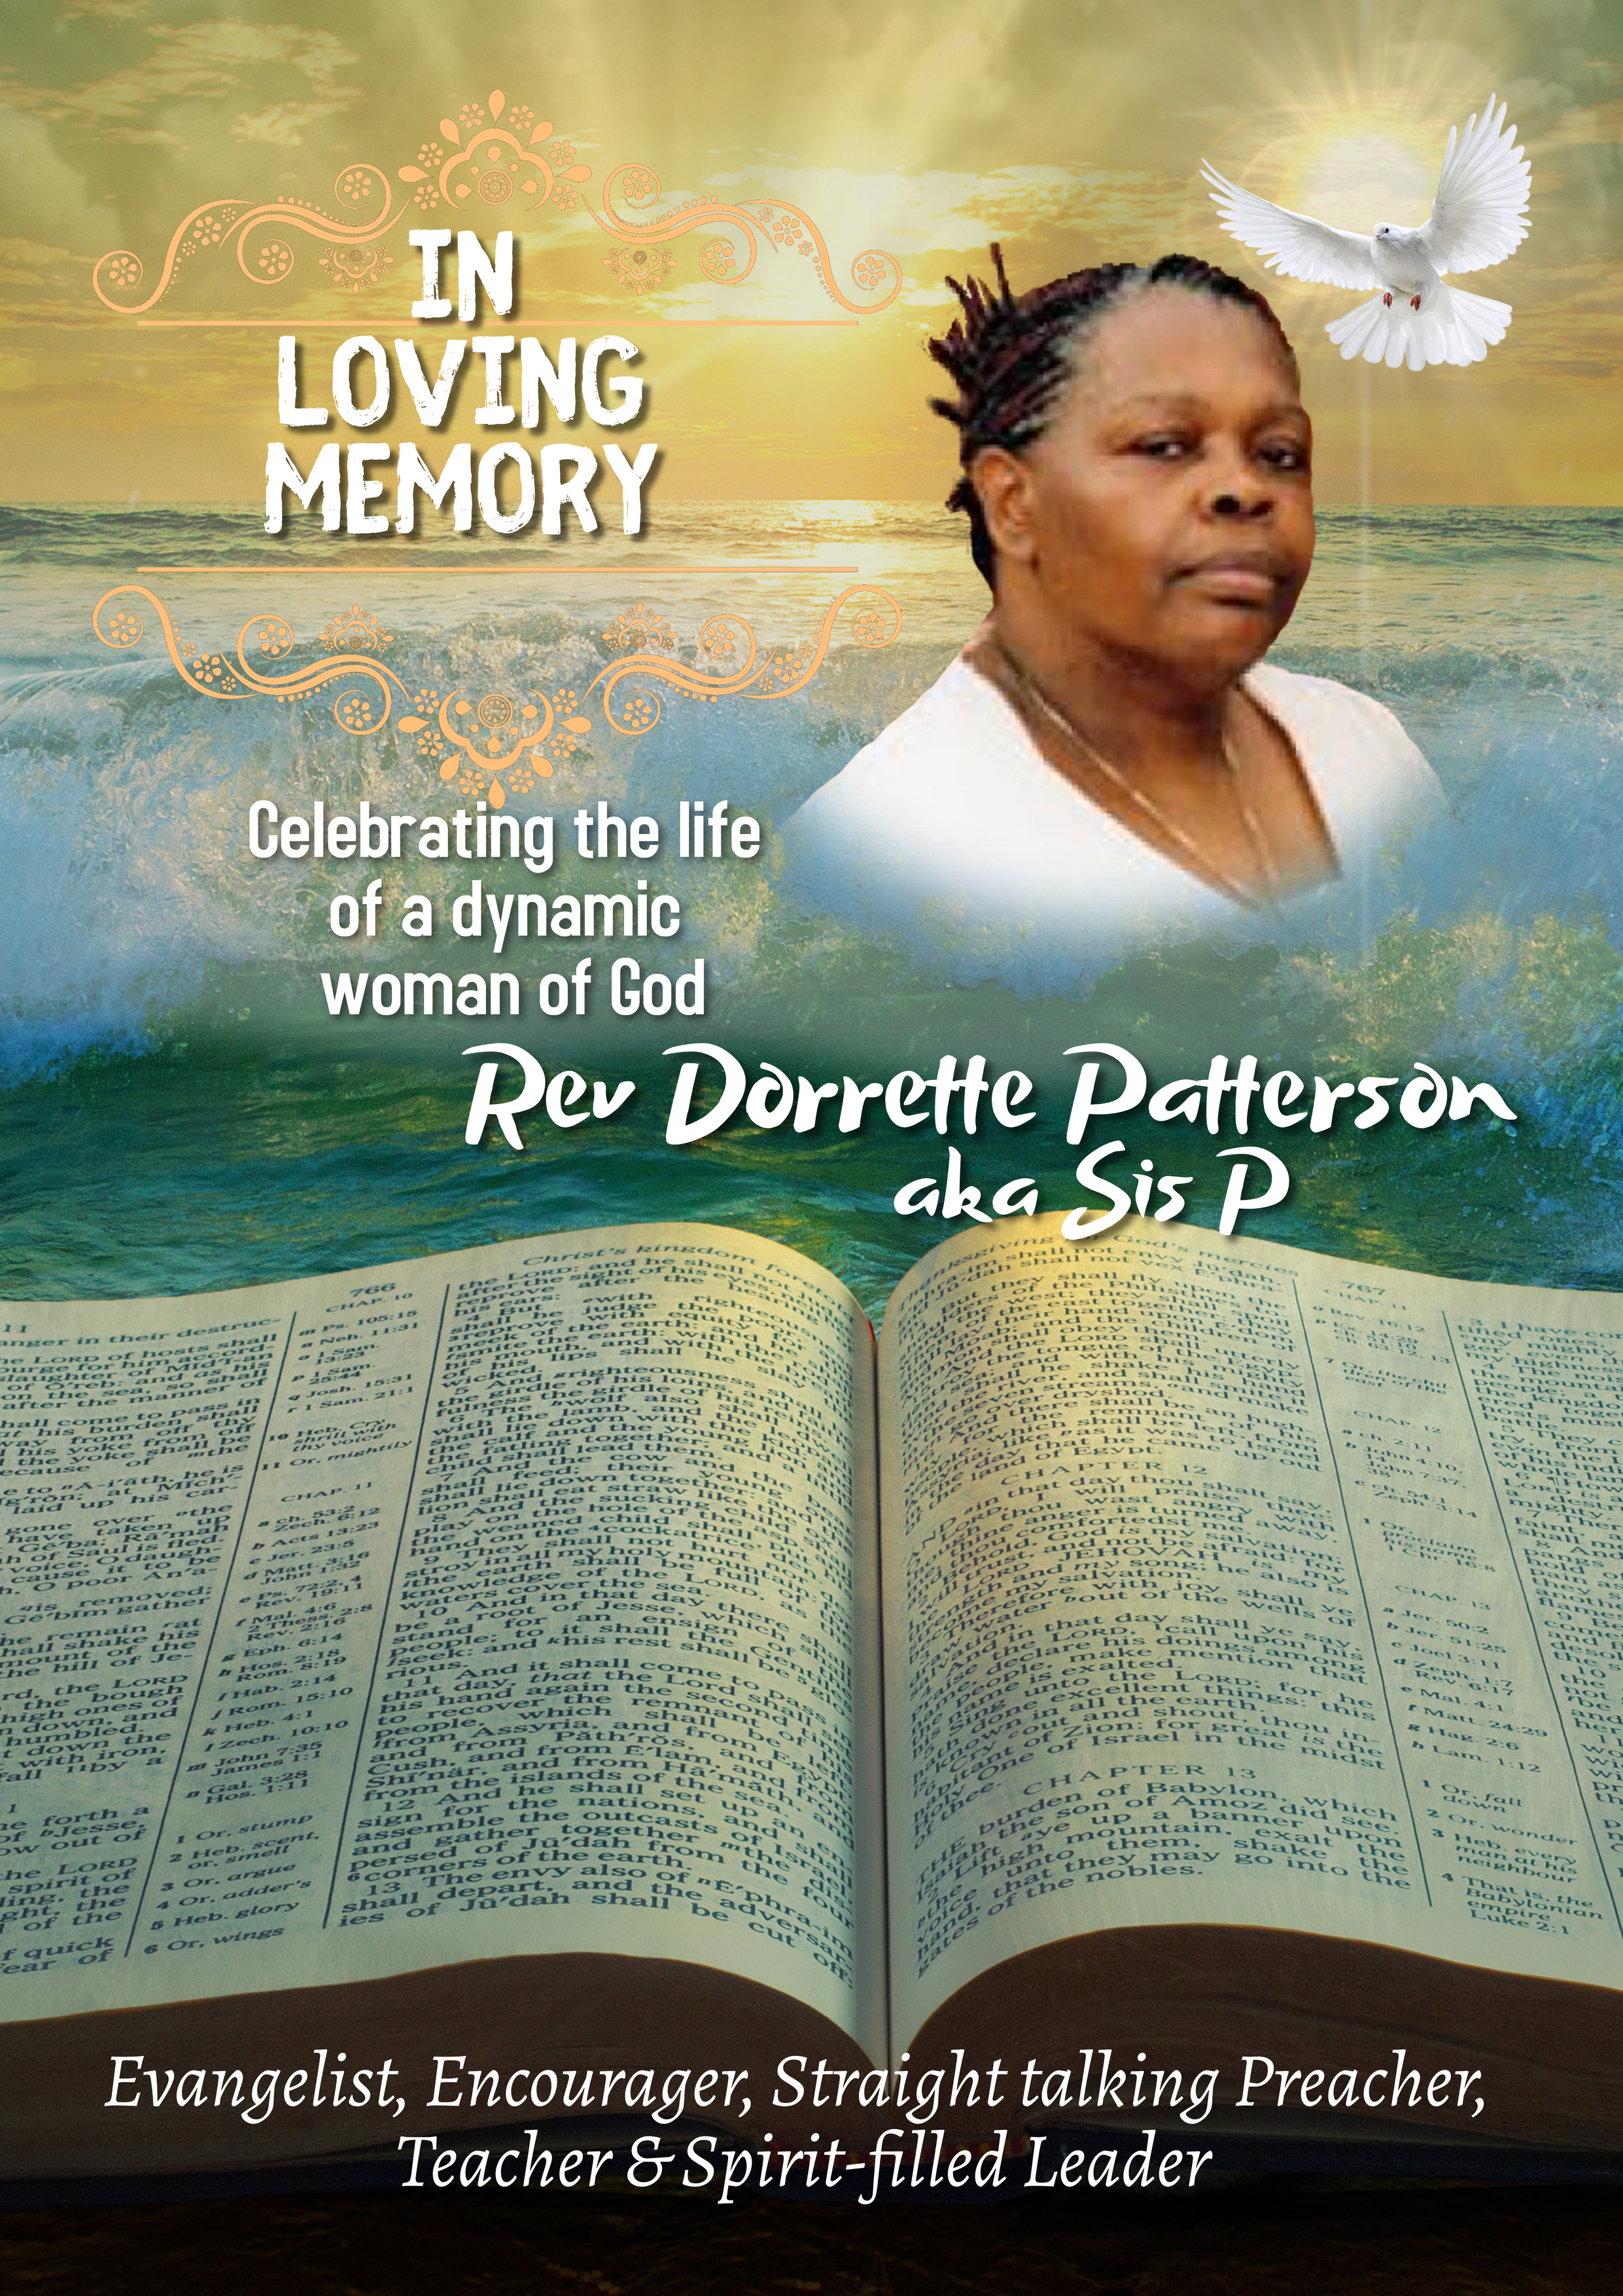 Memorial book to Rev Patterson